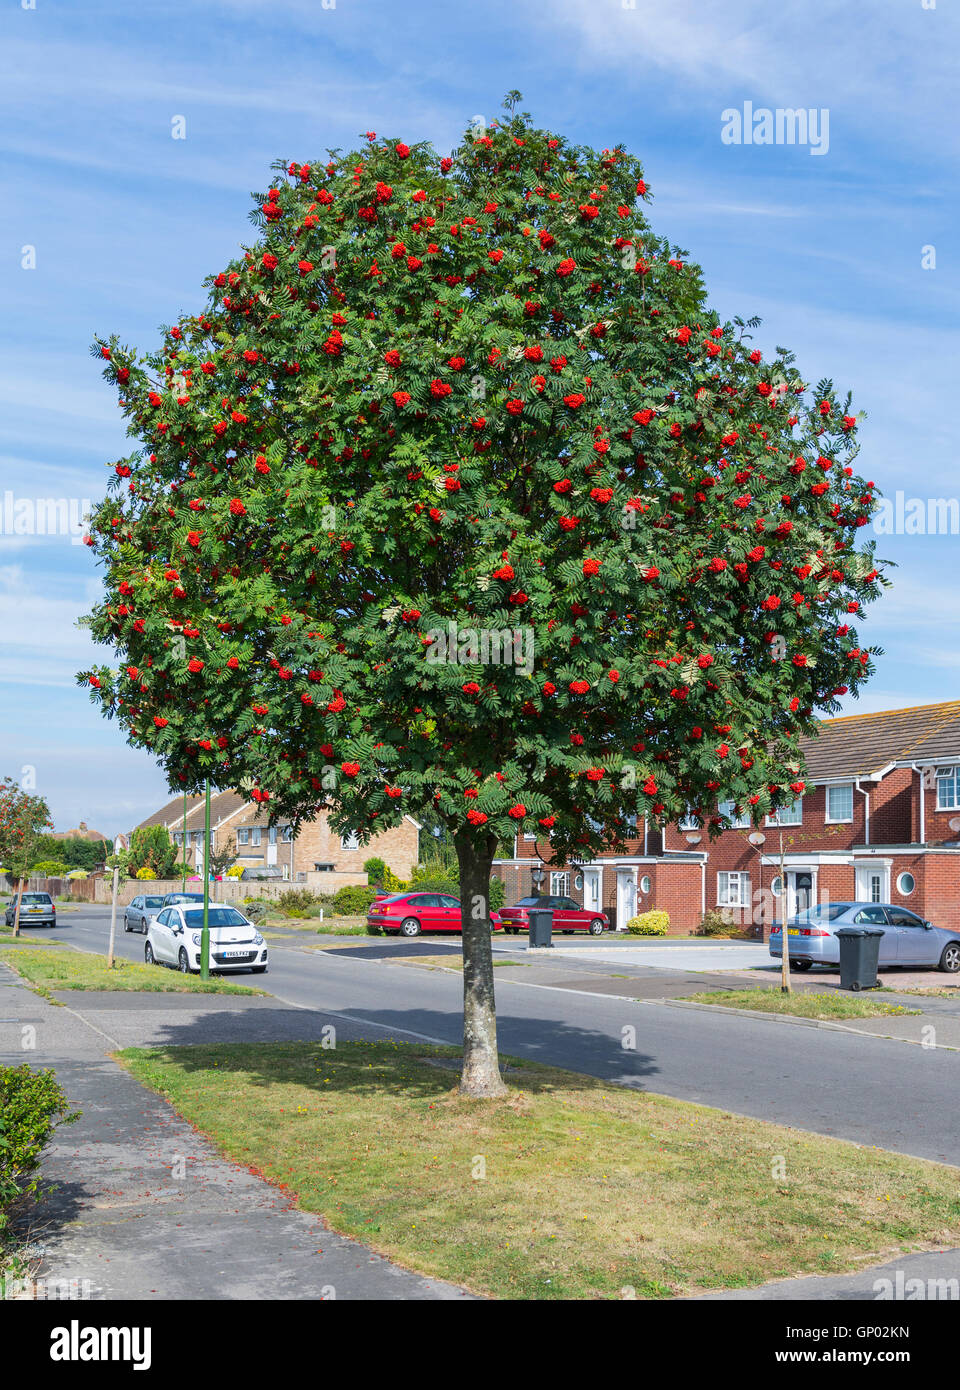 Mountain Ash tree (Rowan tree, Sorbus aucuparia) by the side of the road in a residential area in England, UK. - Stock Image